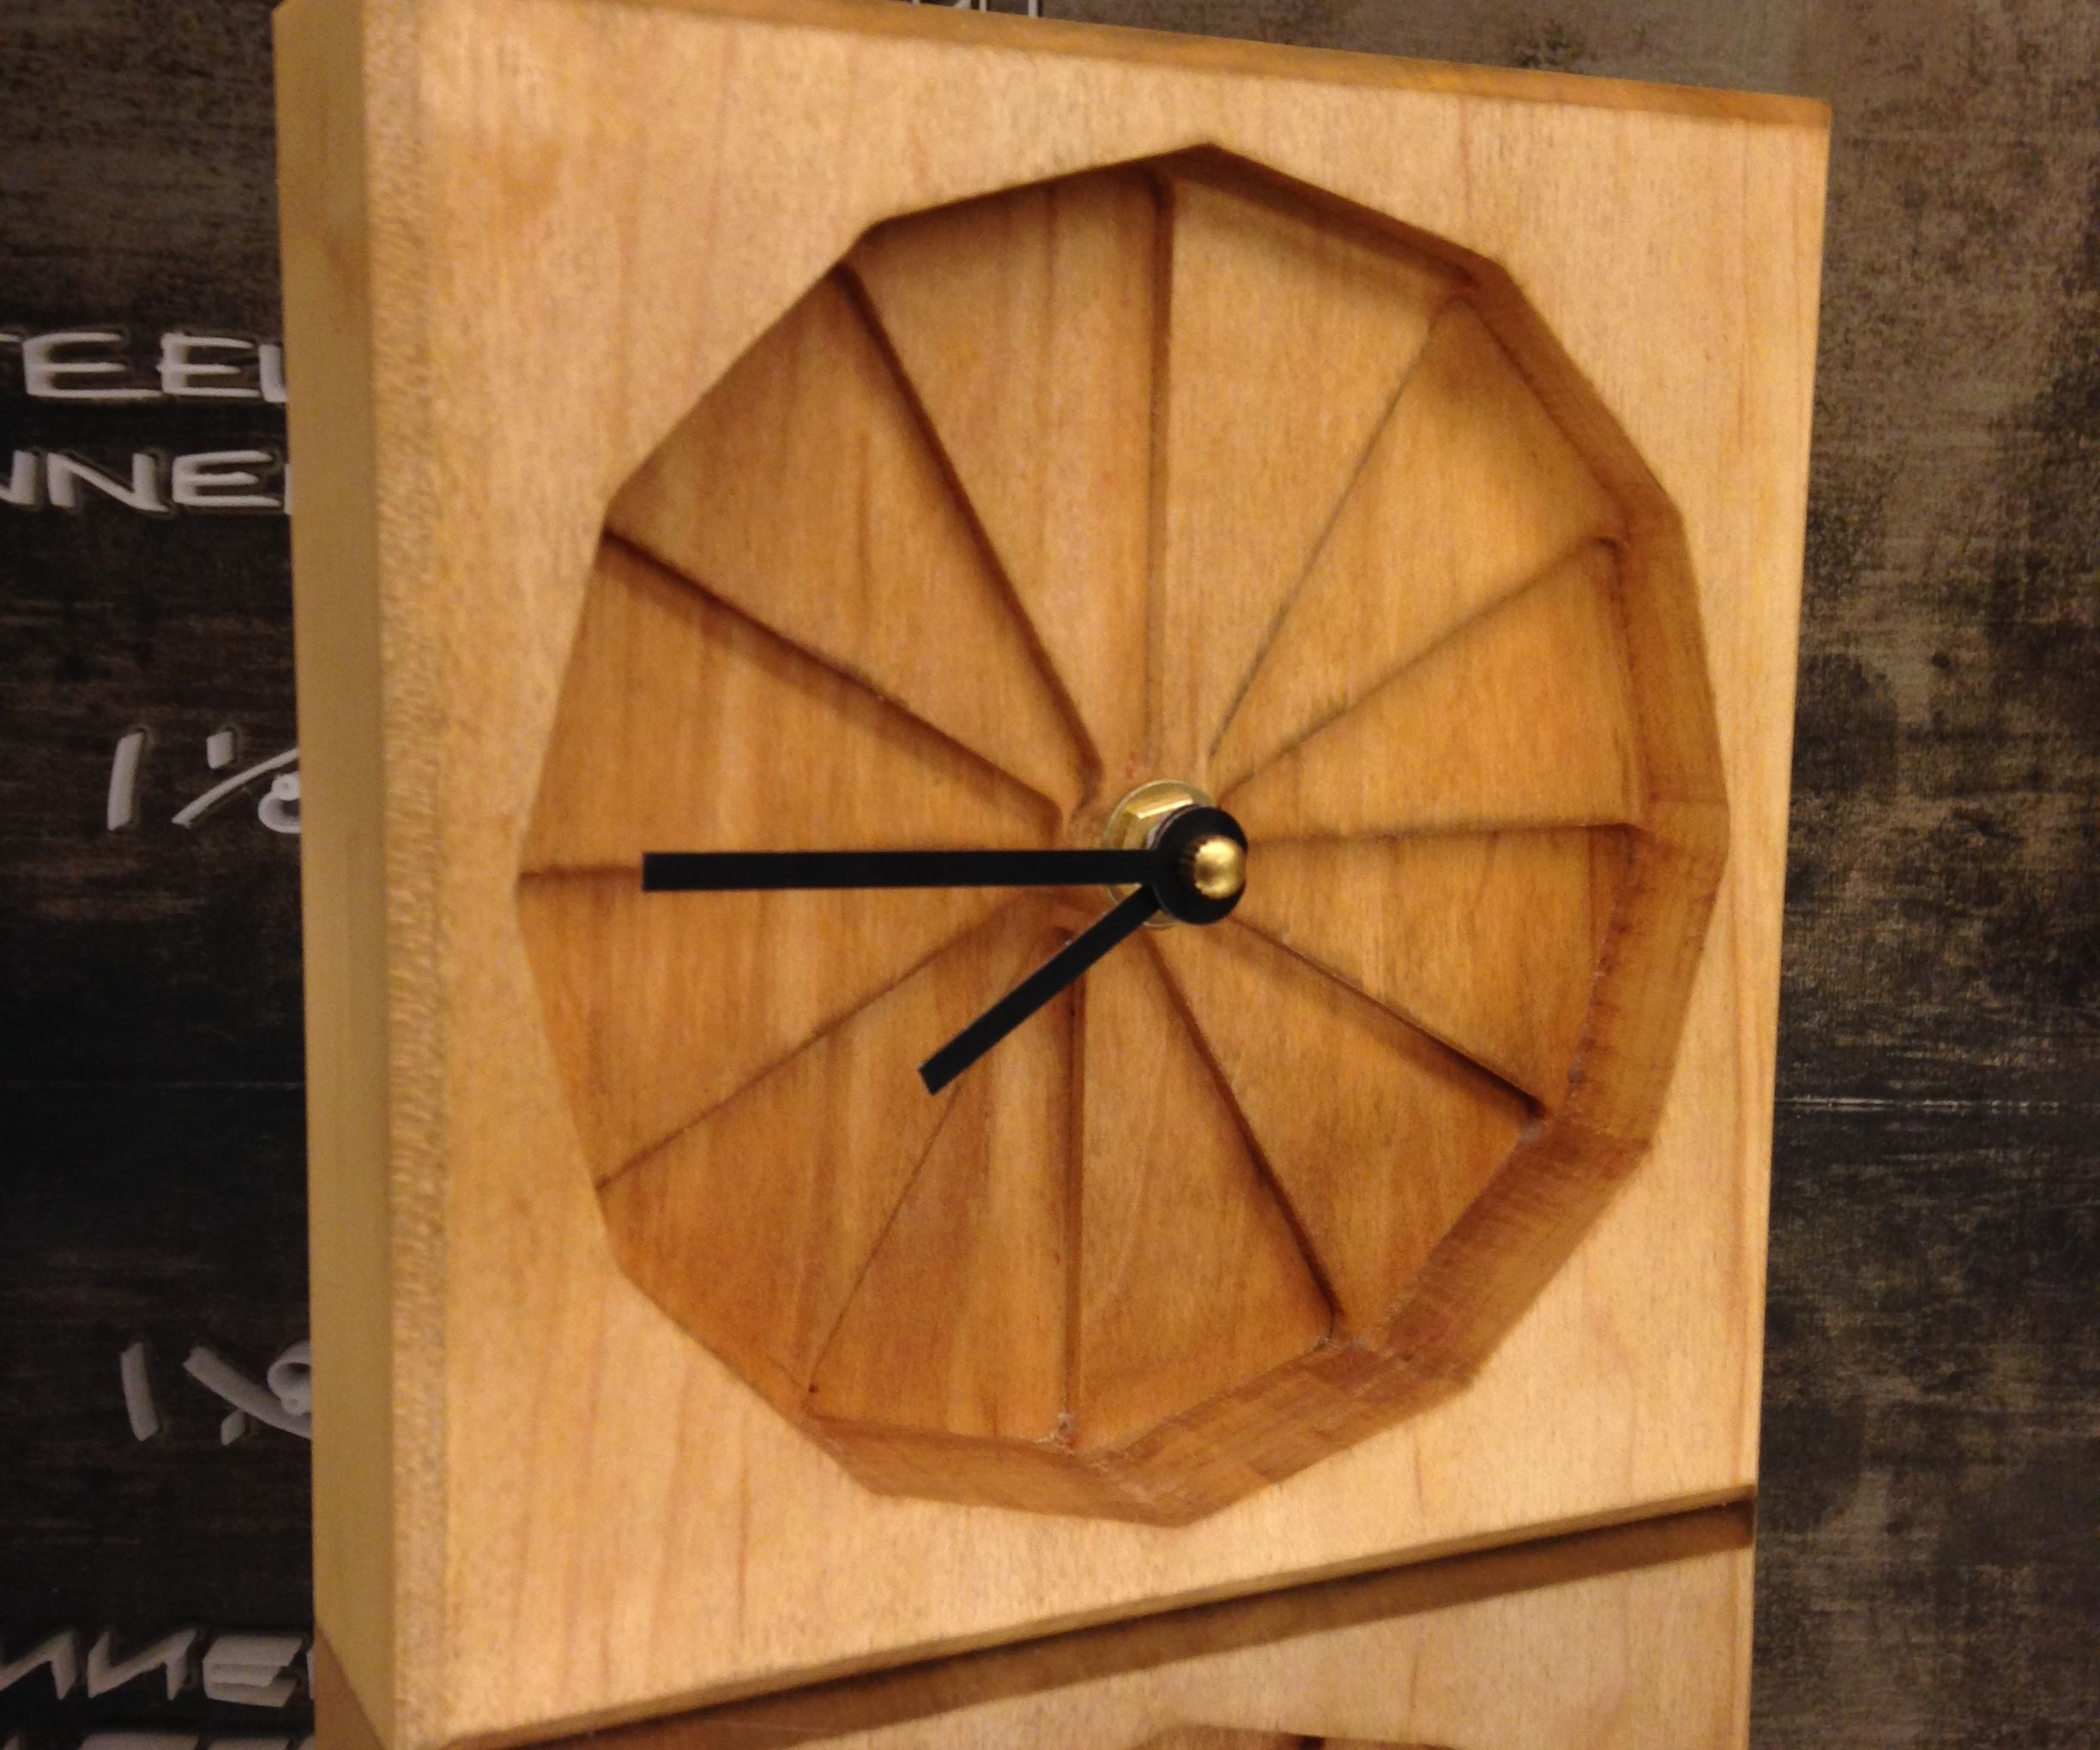 Step by Step Clock- 2 sided CNC wood surfacing with Shopbot router